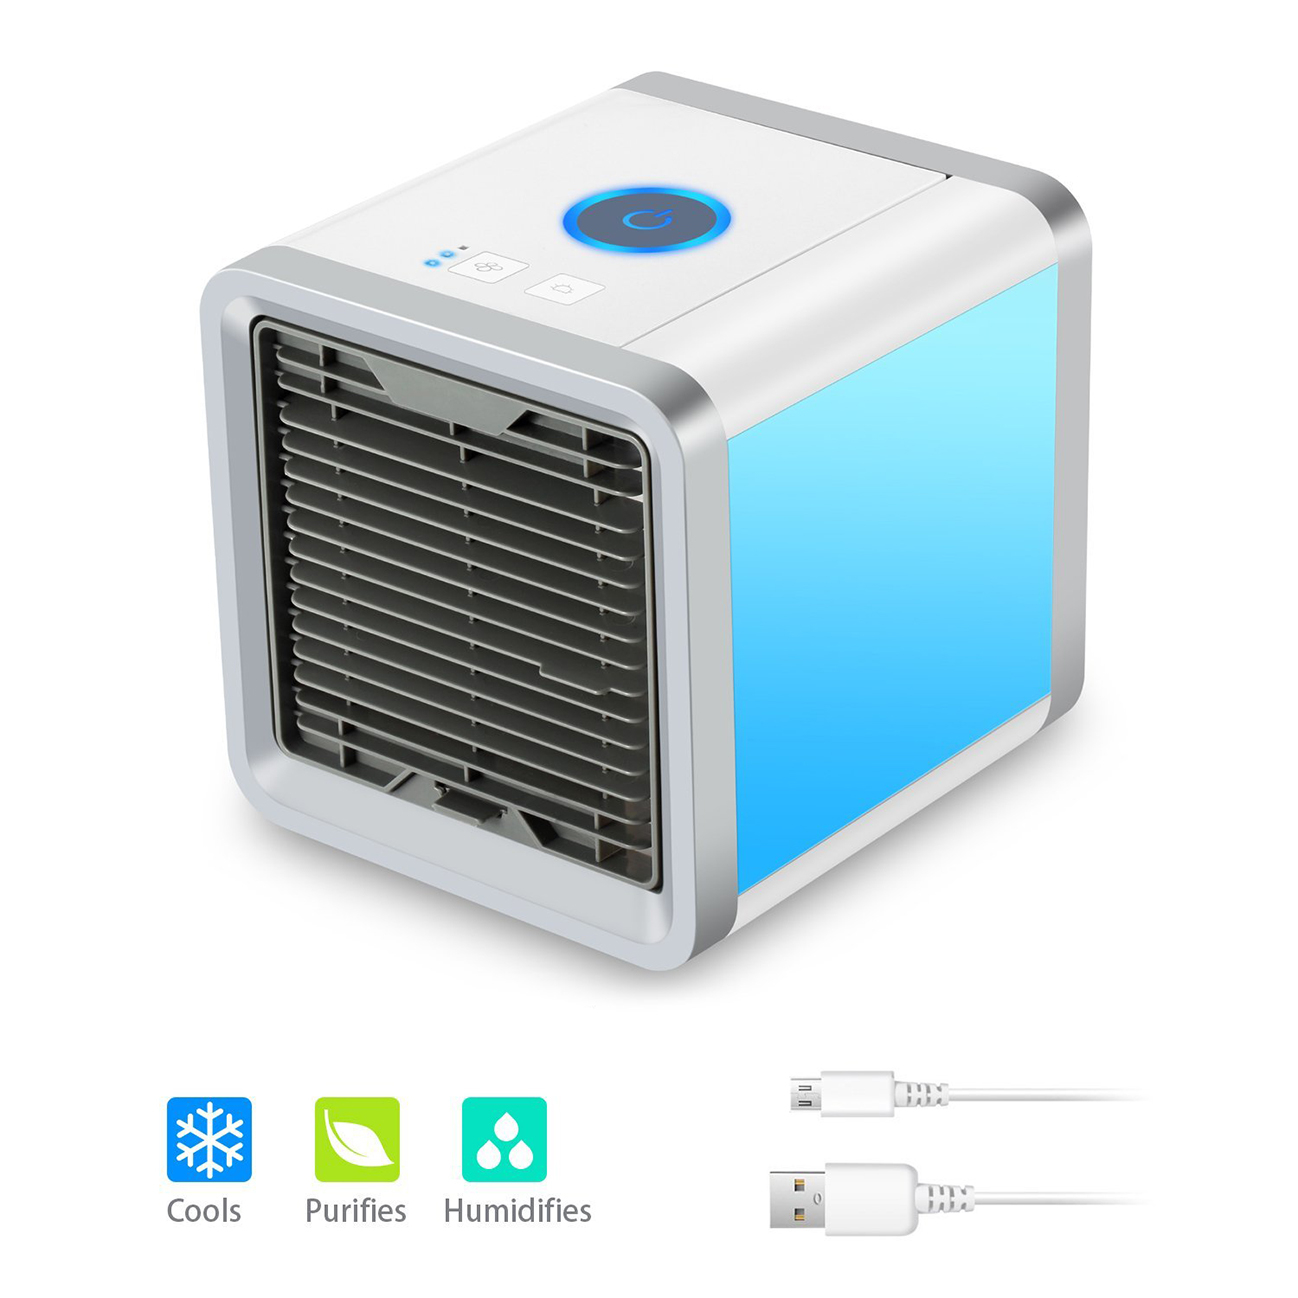 Portable Air Conditioner 5b6007a9d9fd913a49048820